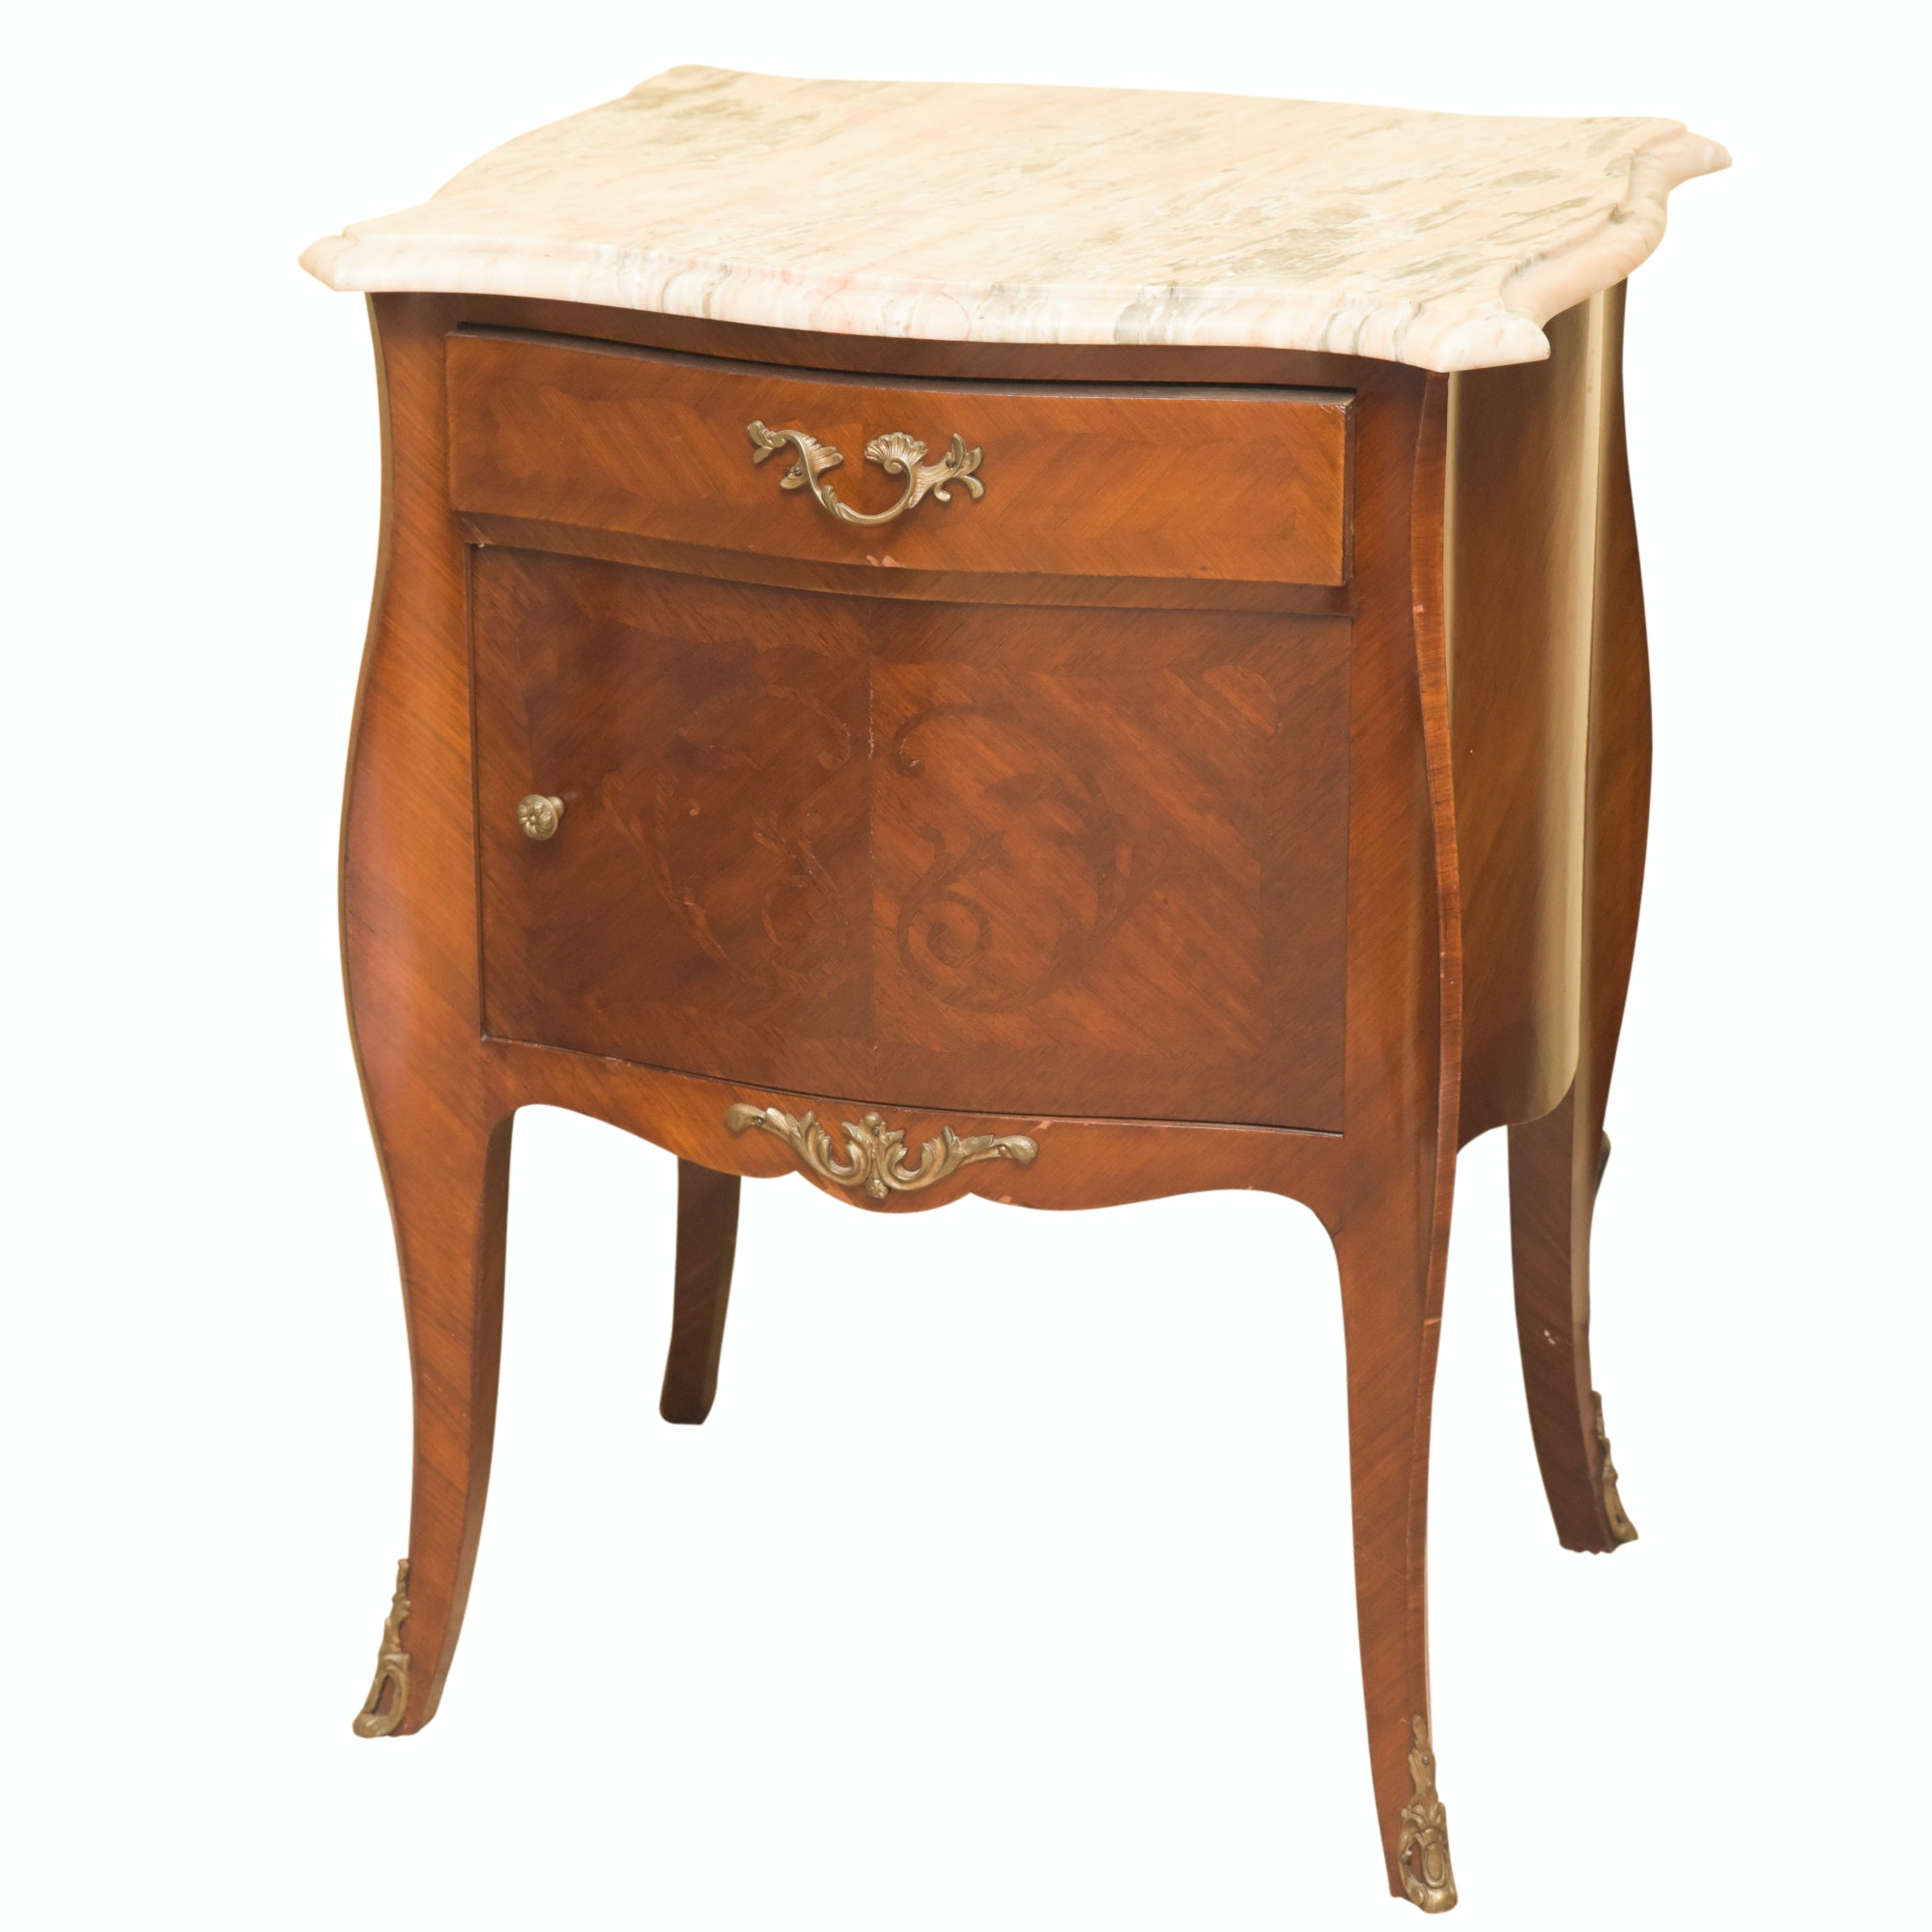 Louis XV Style Stone Topped Banded Walnut Veneered Side Table, 20th Century